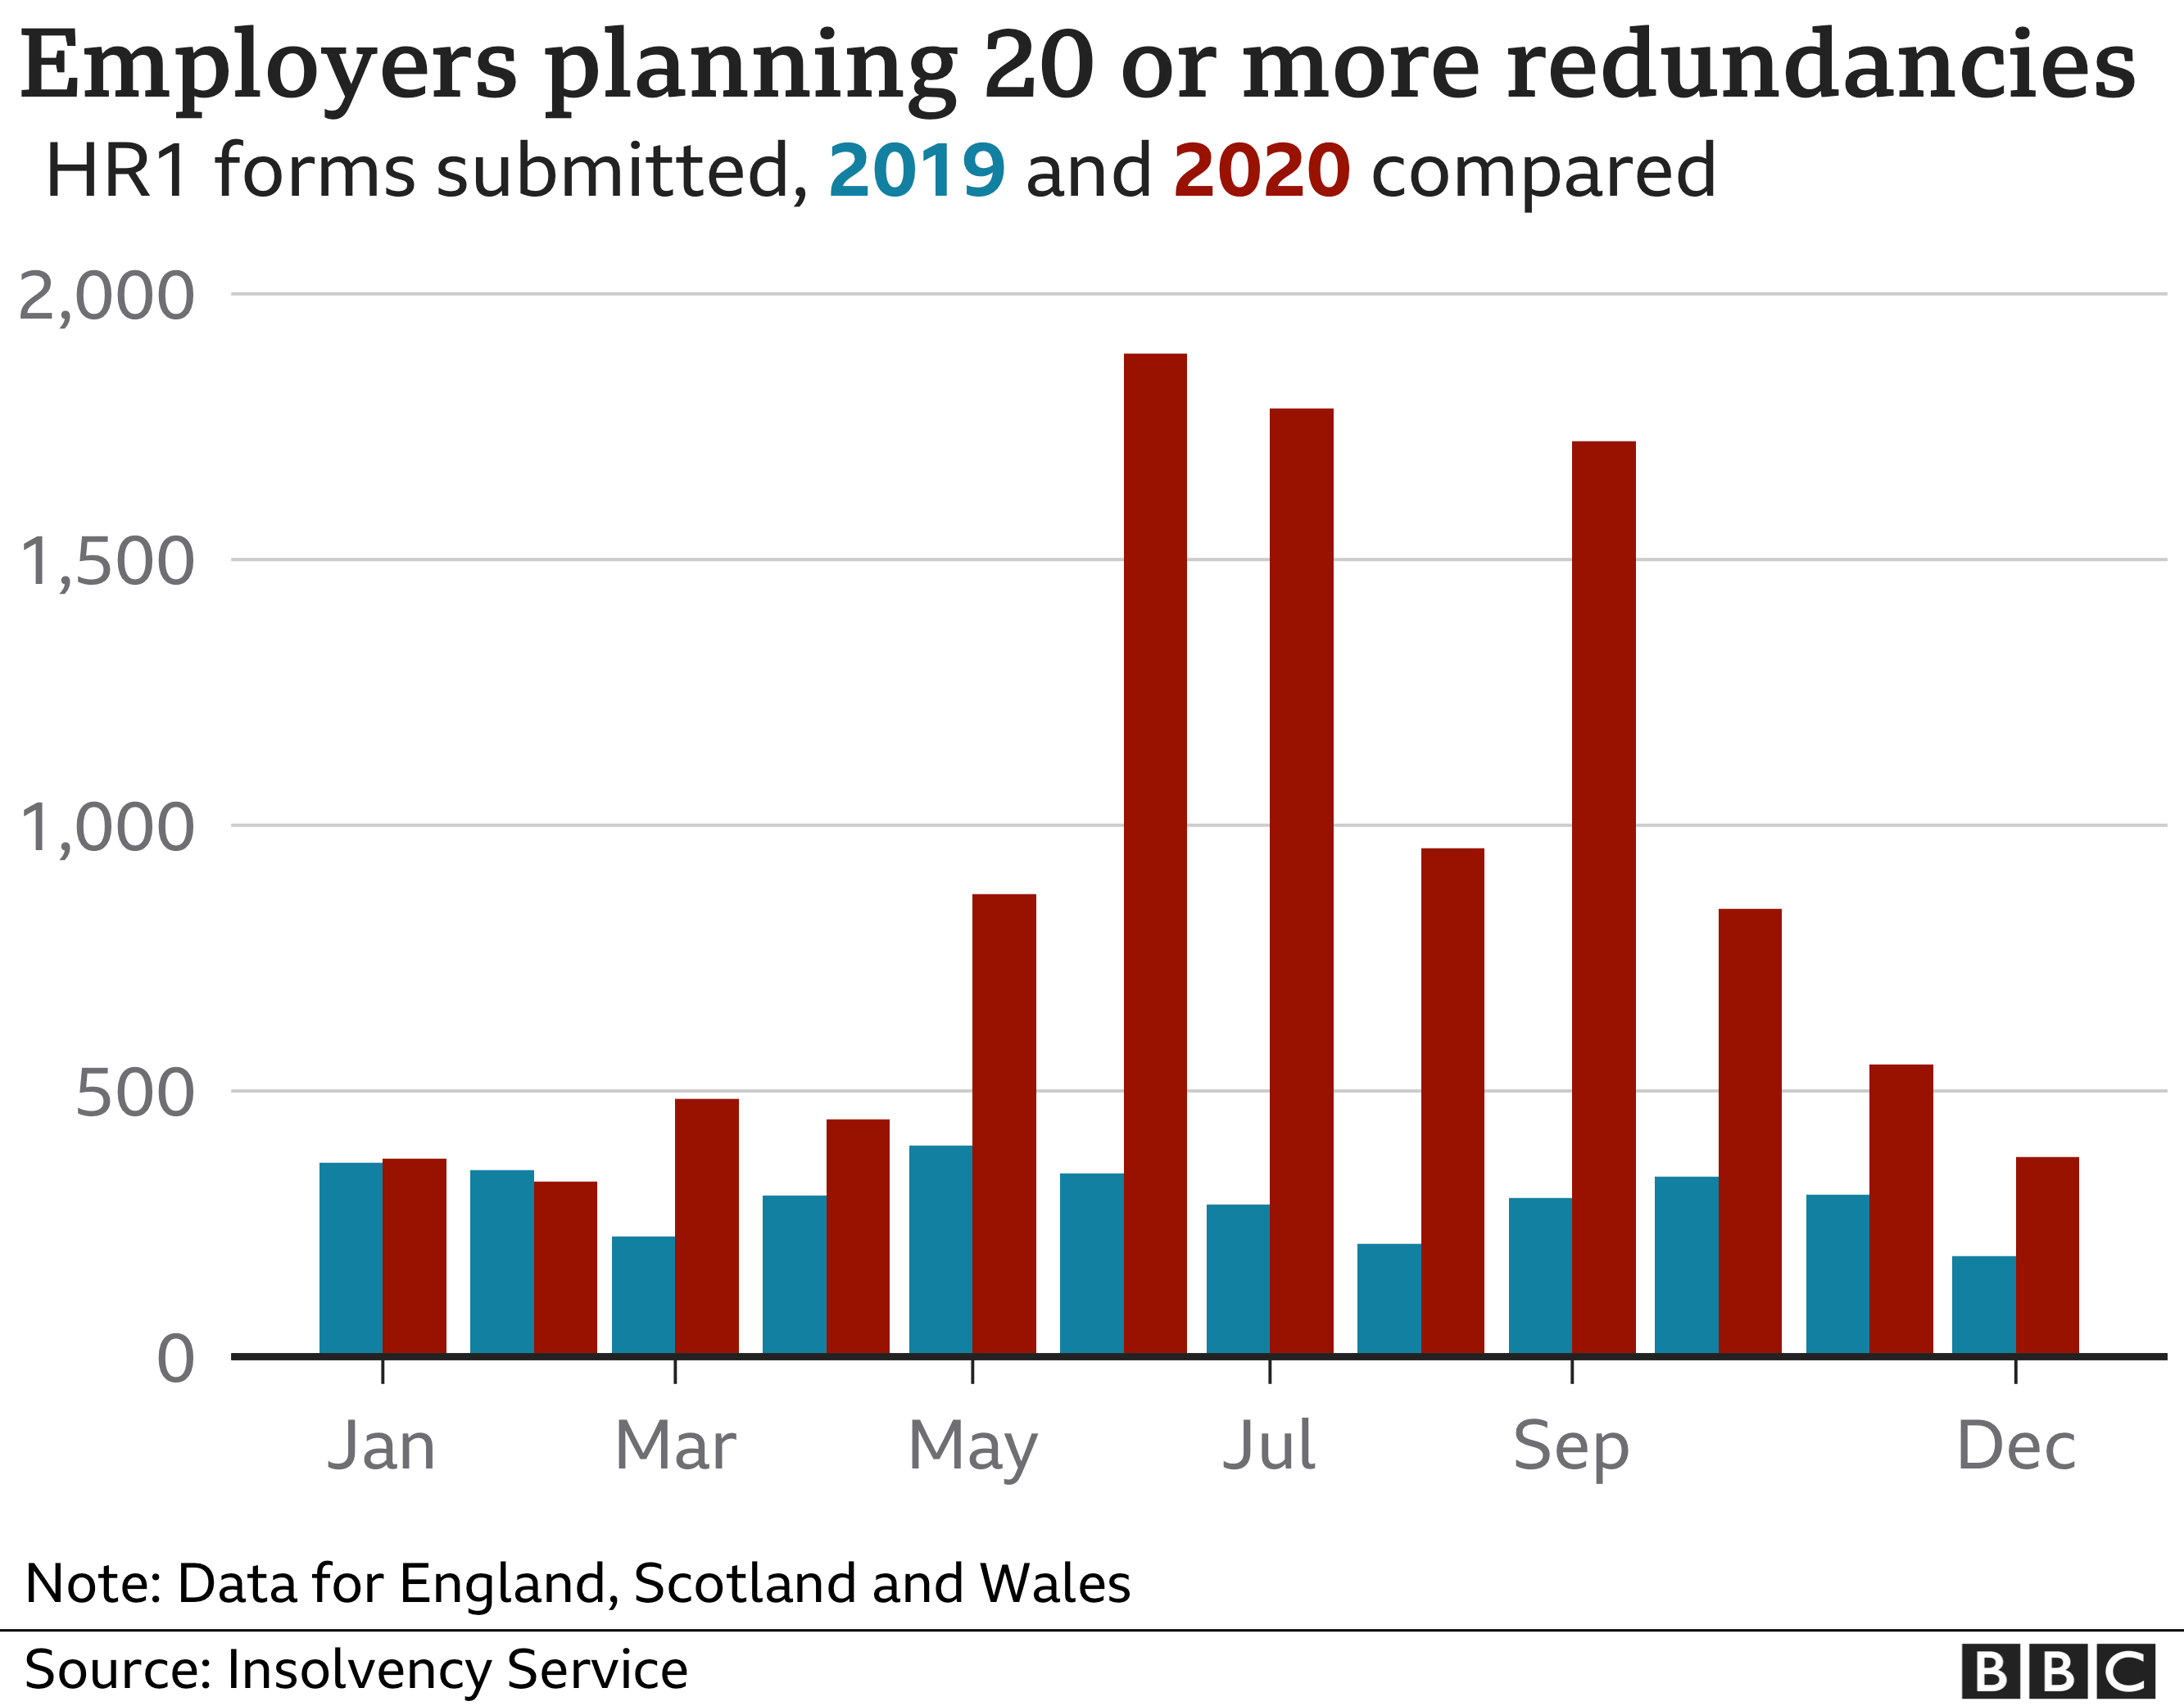 Graph showing the number of employers planning redundancies in England, Scotland and Wales by month in 2019 compared with 2020